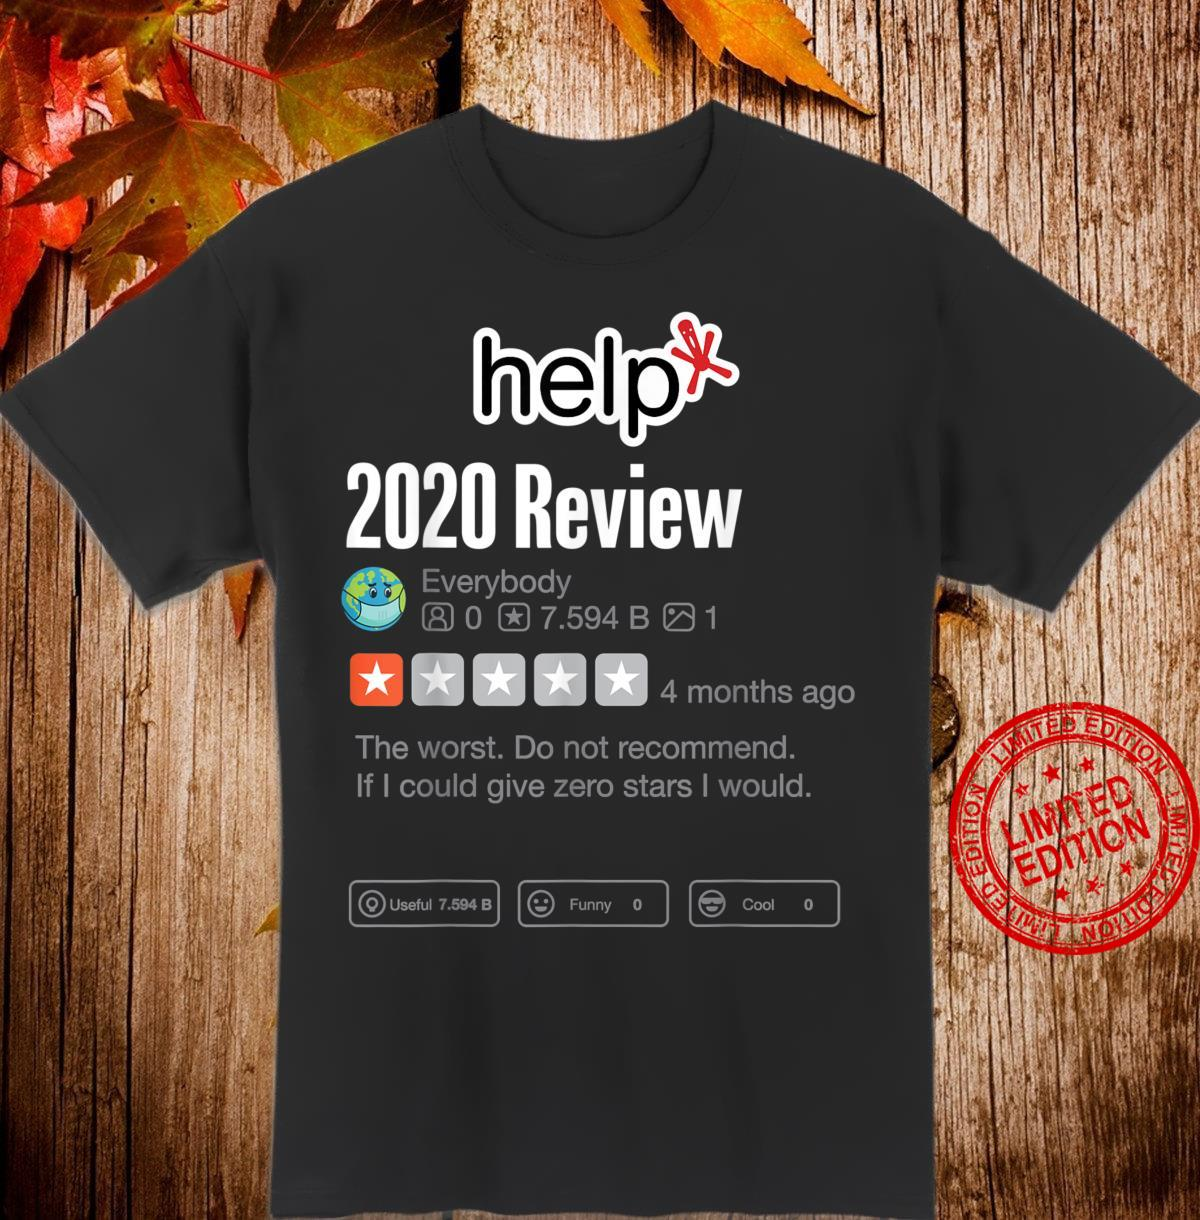 2020 Review Shirt Very Bad Would Not Recommend Help Shirt